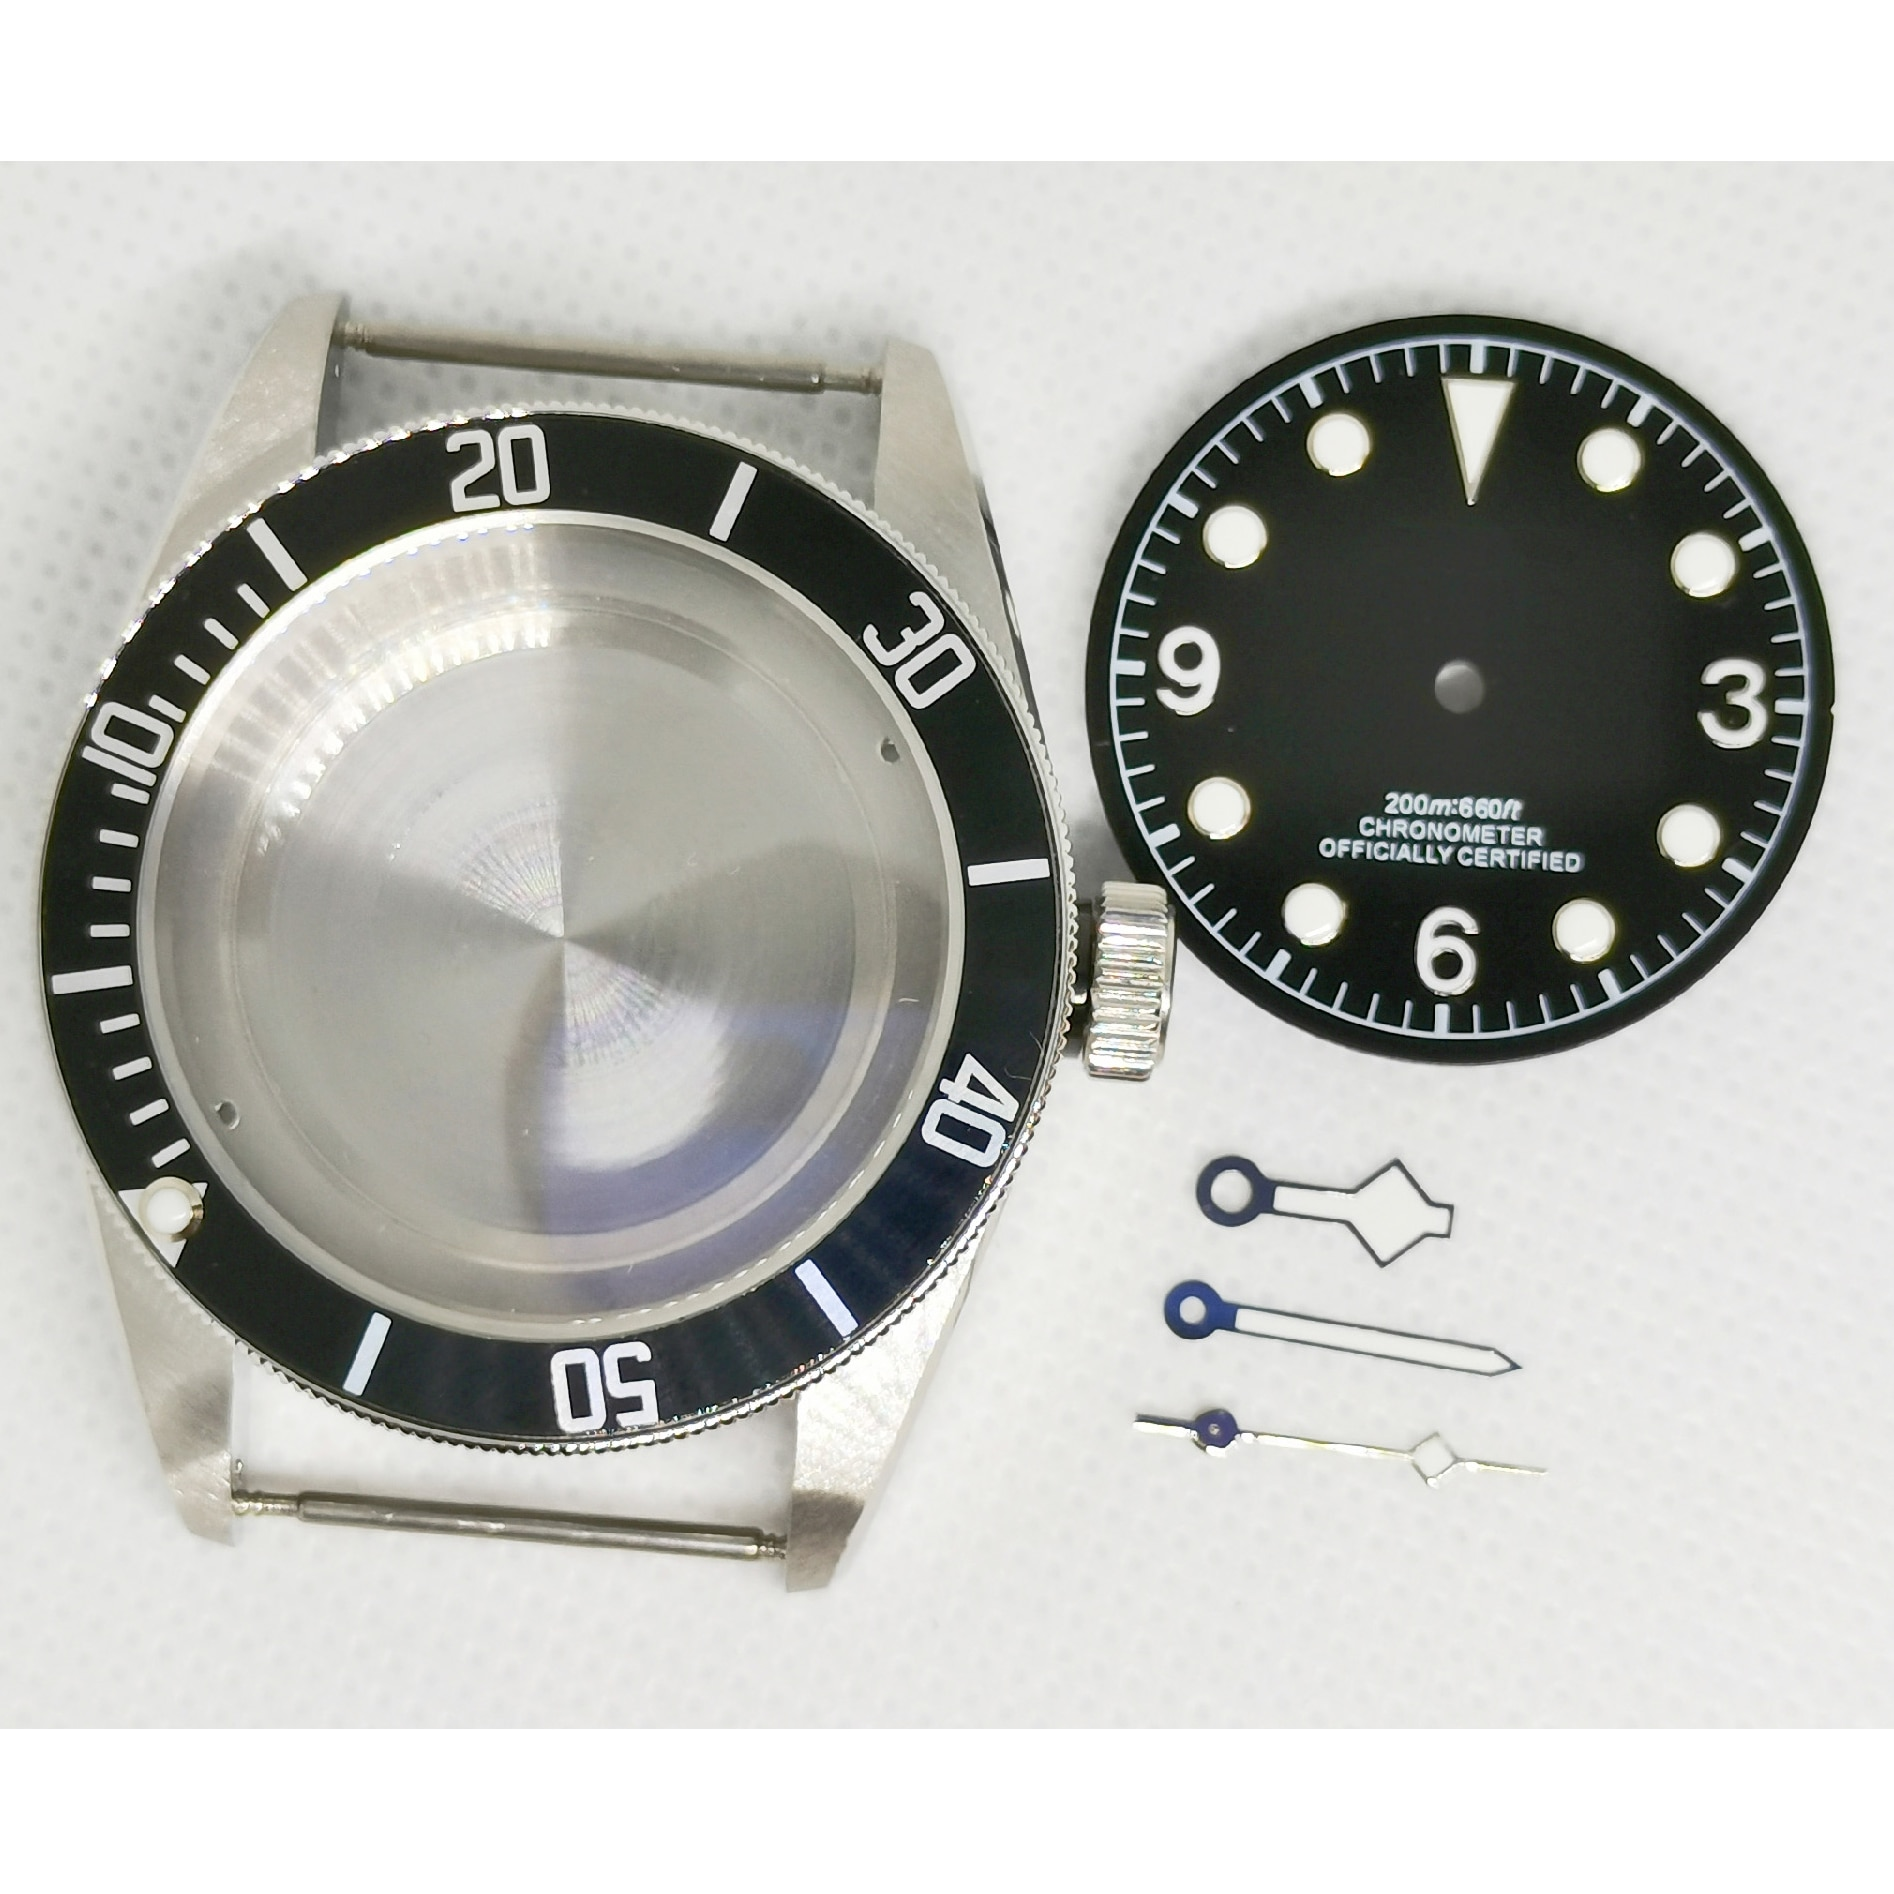 41MM Case 316 Stainless Steel 30.5mm Dial And Hands Fit ETA 2836 ST2130 Miyota8215 NH35 NH36 Automatic Movement enlarge